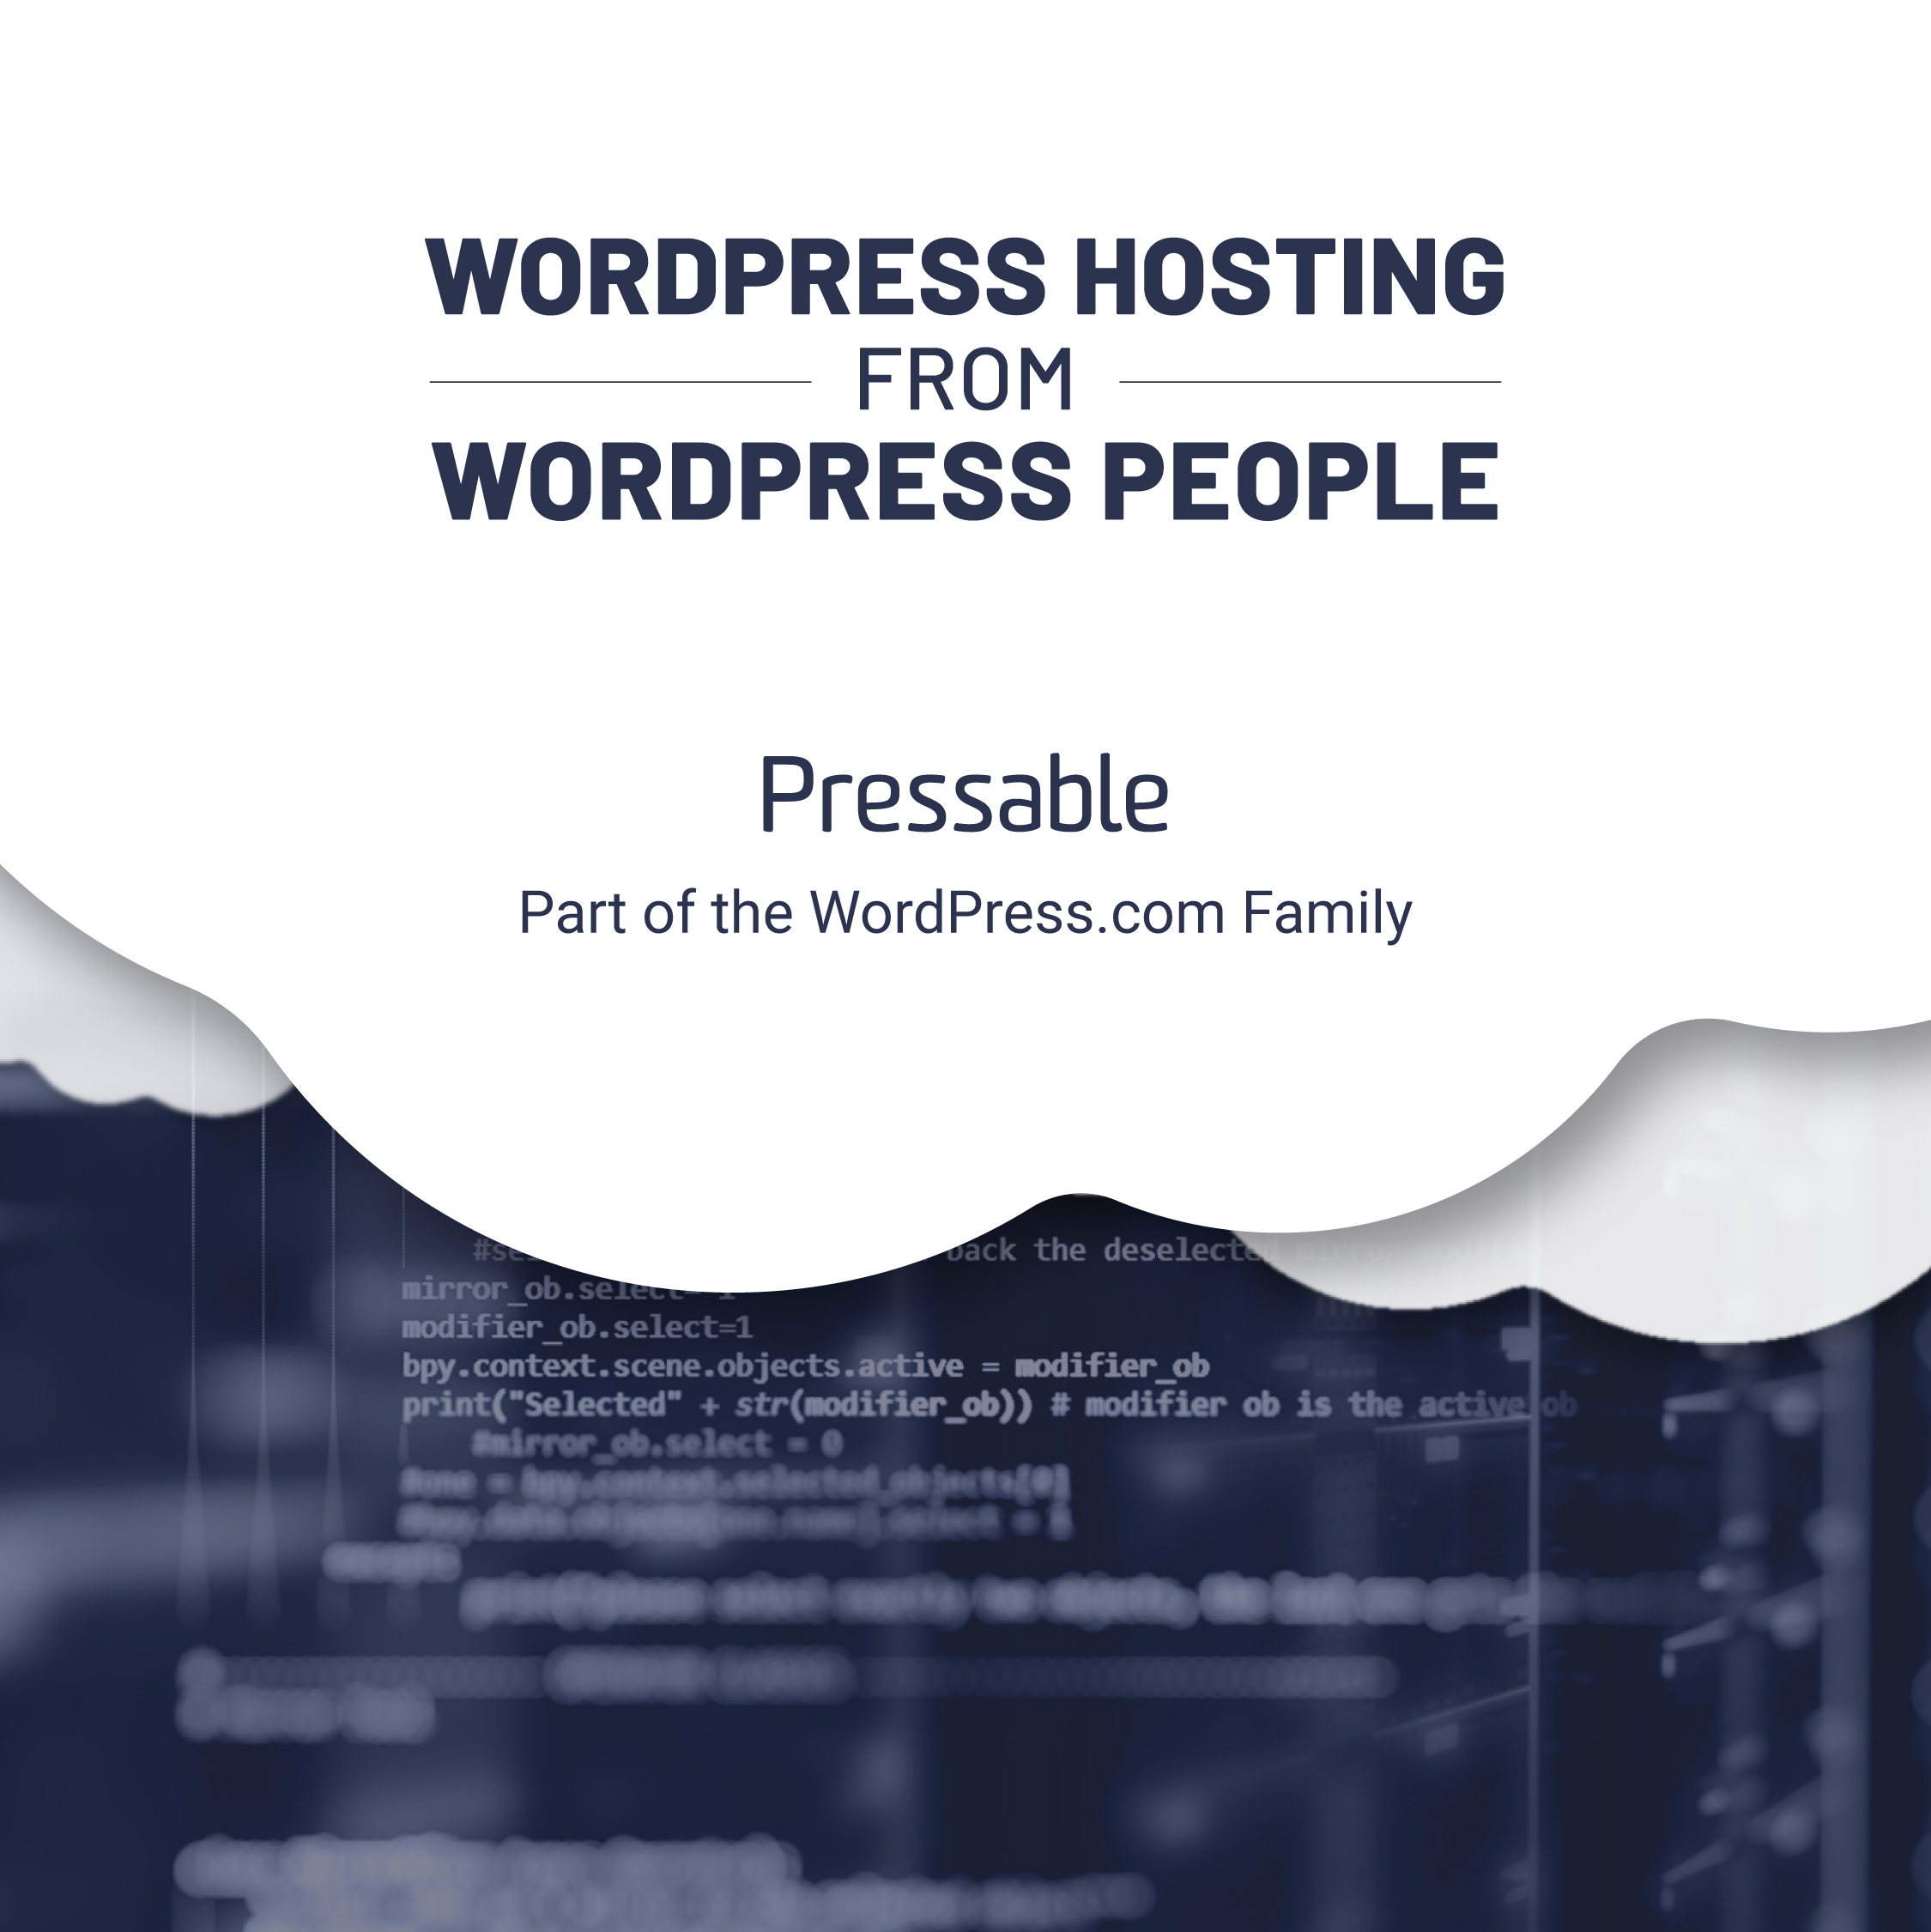 WORDPRESS HOSTING FROM WORDPRESS PEOPLE